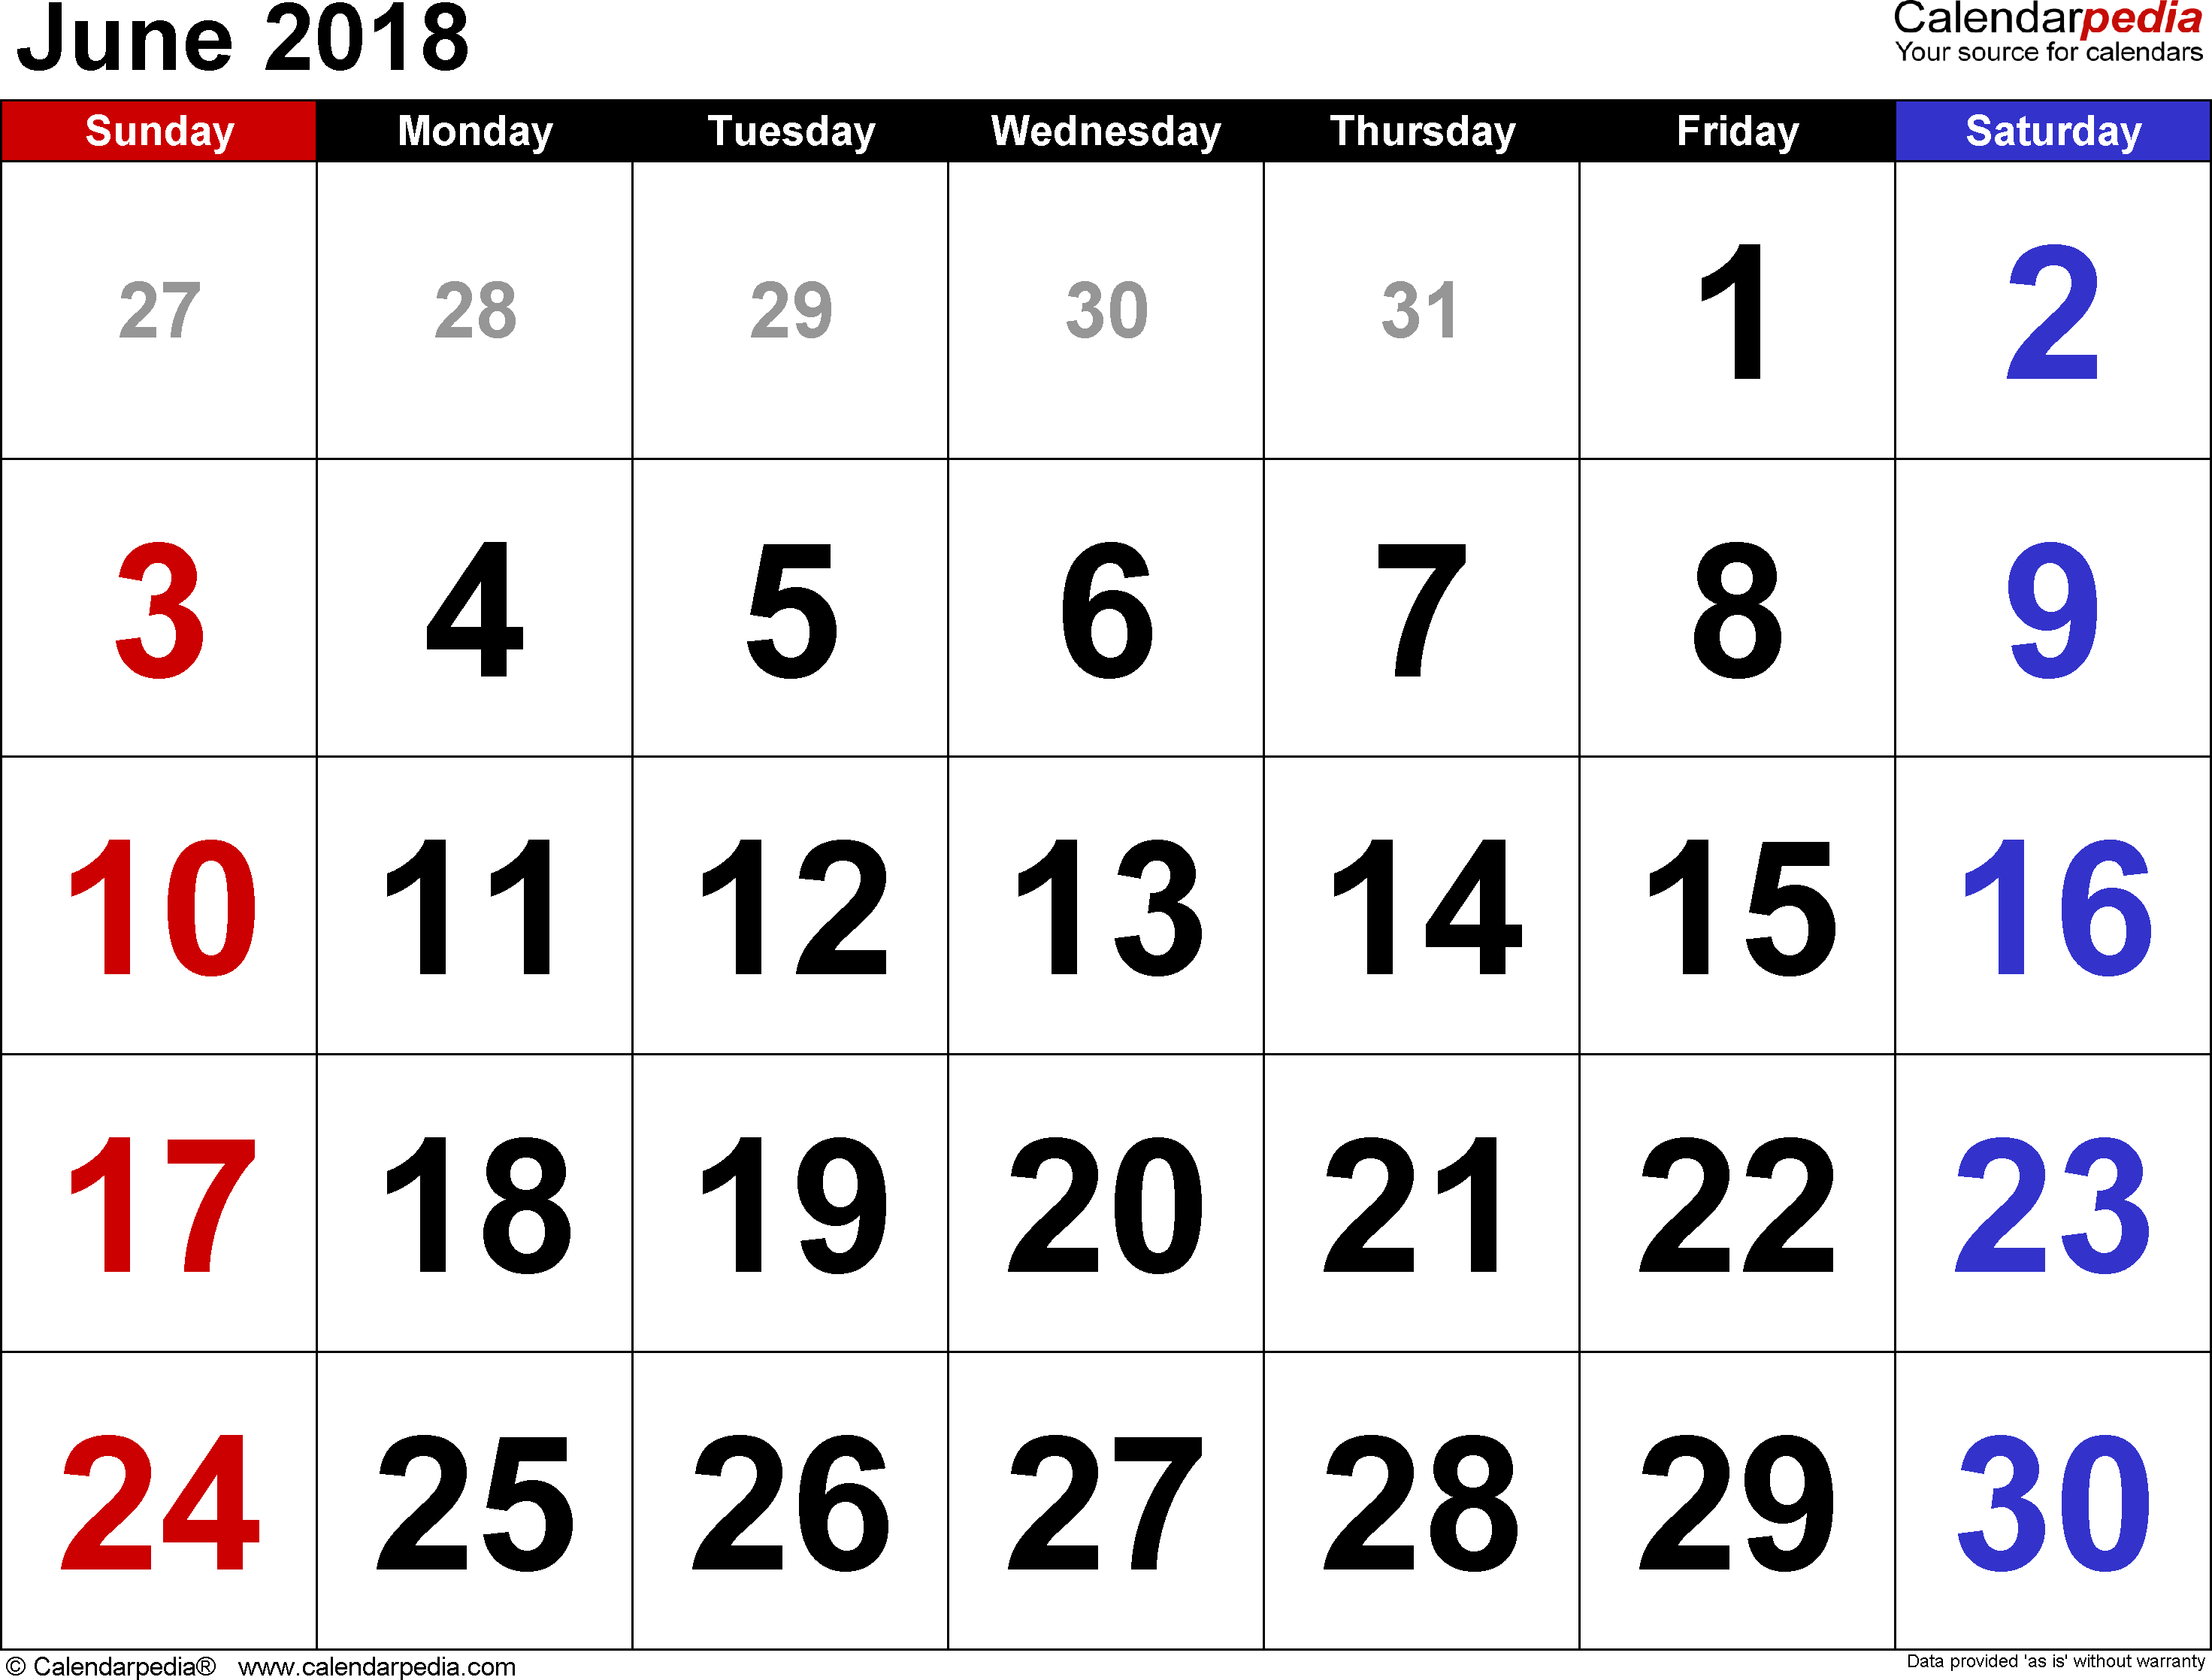 June 2018 Calendars for Word, Excel & PDF